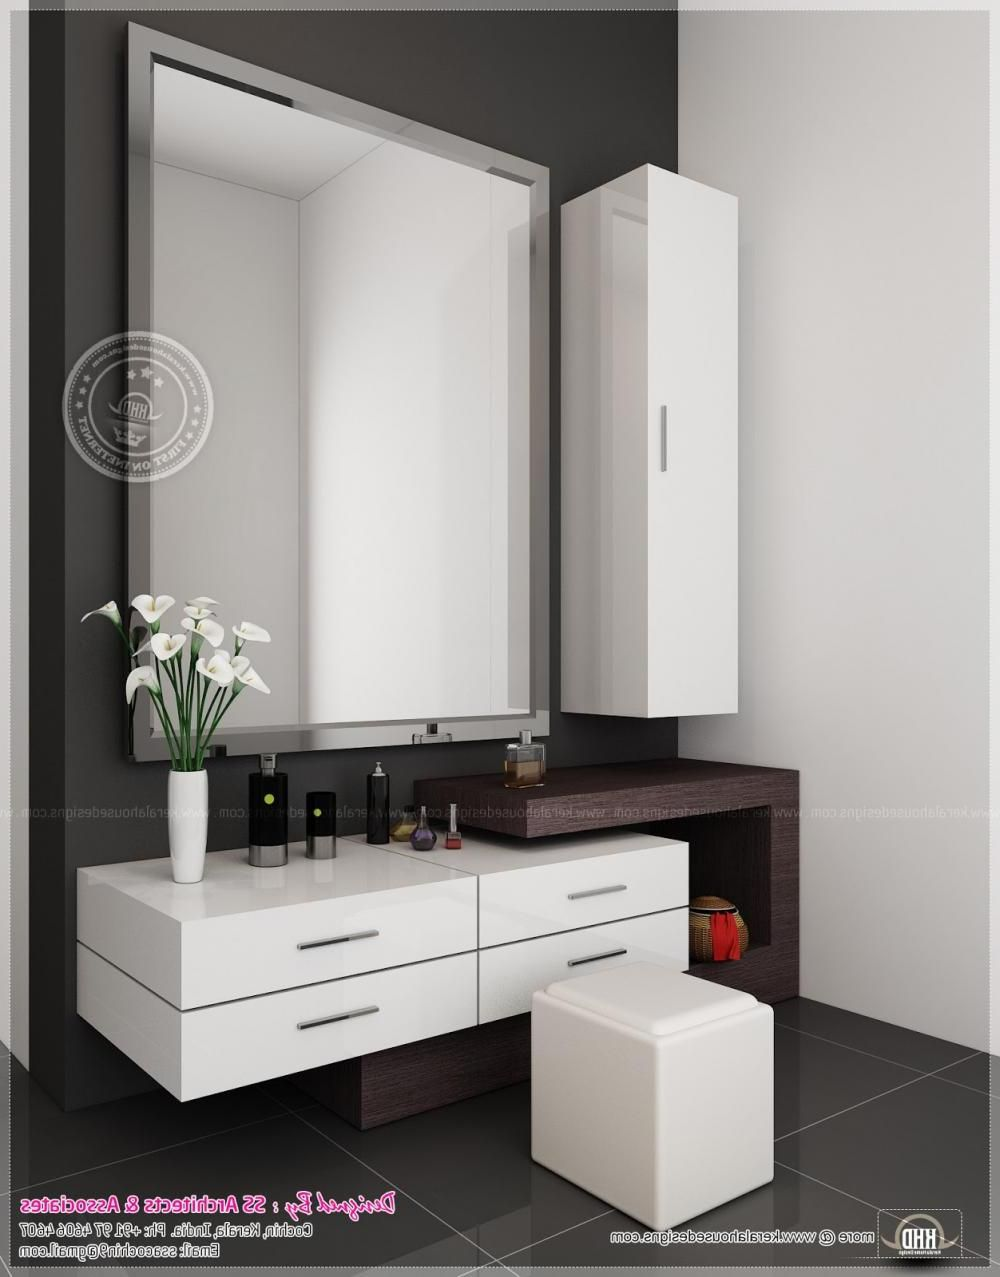 Dressing table with mirror and lights - Dressing Table With Mirror And Lights Google Search